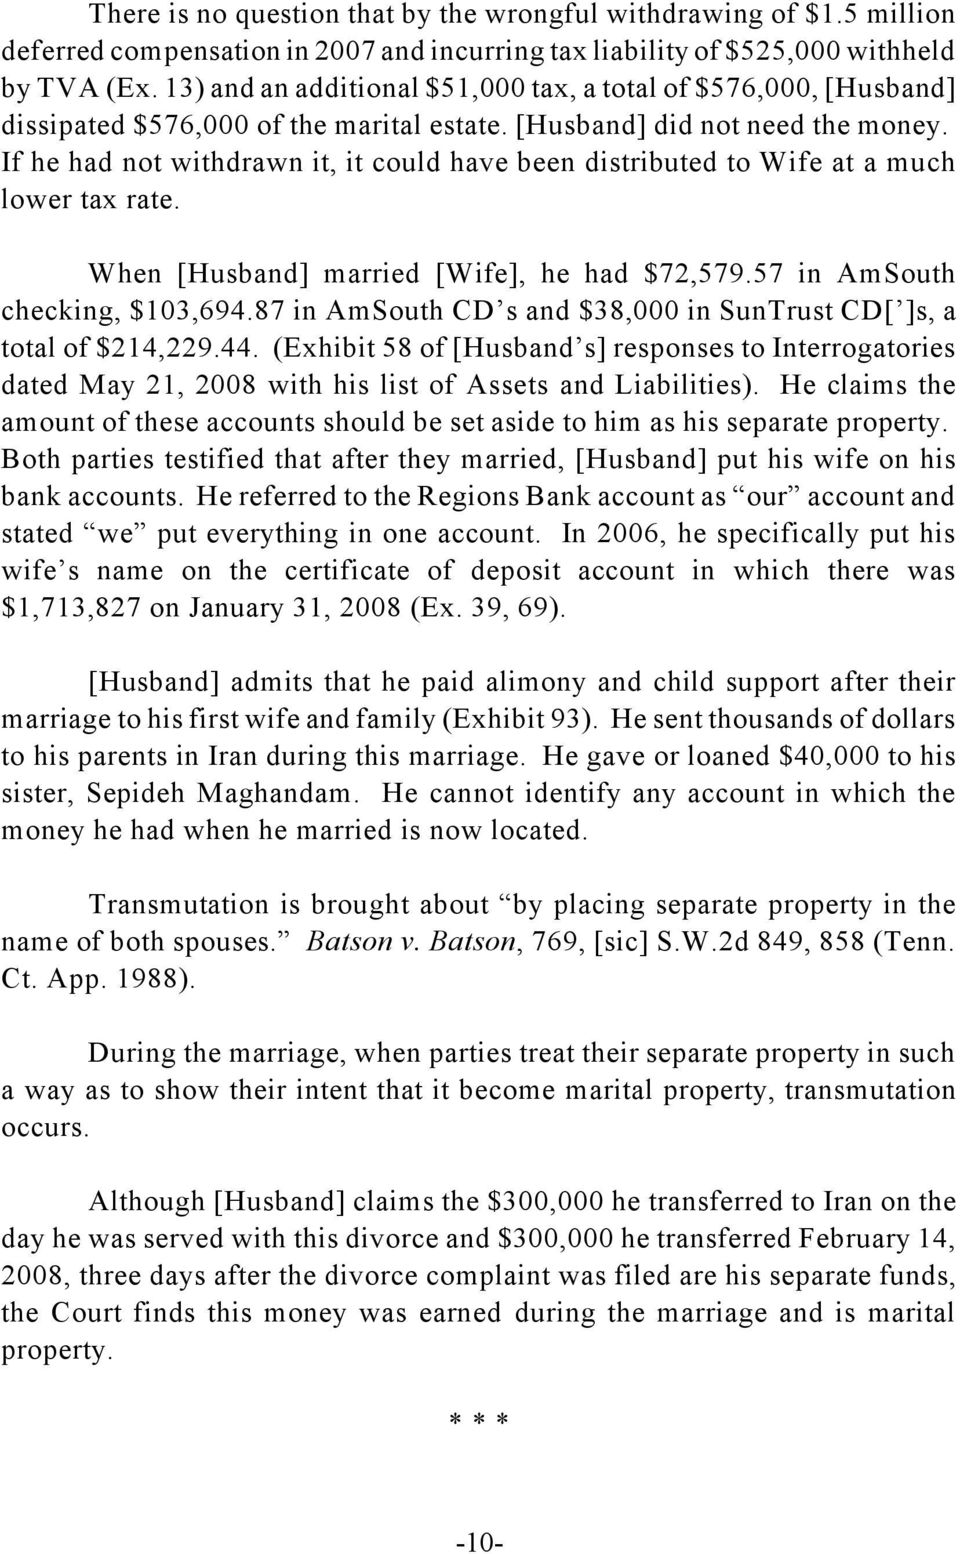 If he had not withdrawn it, it could have been distributed to Wife at a much lower tax rate. When [Husband] married [Wife], he had $72,579.57 in AmSouth checking, $103,694.